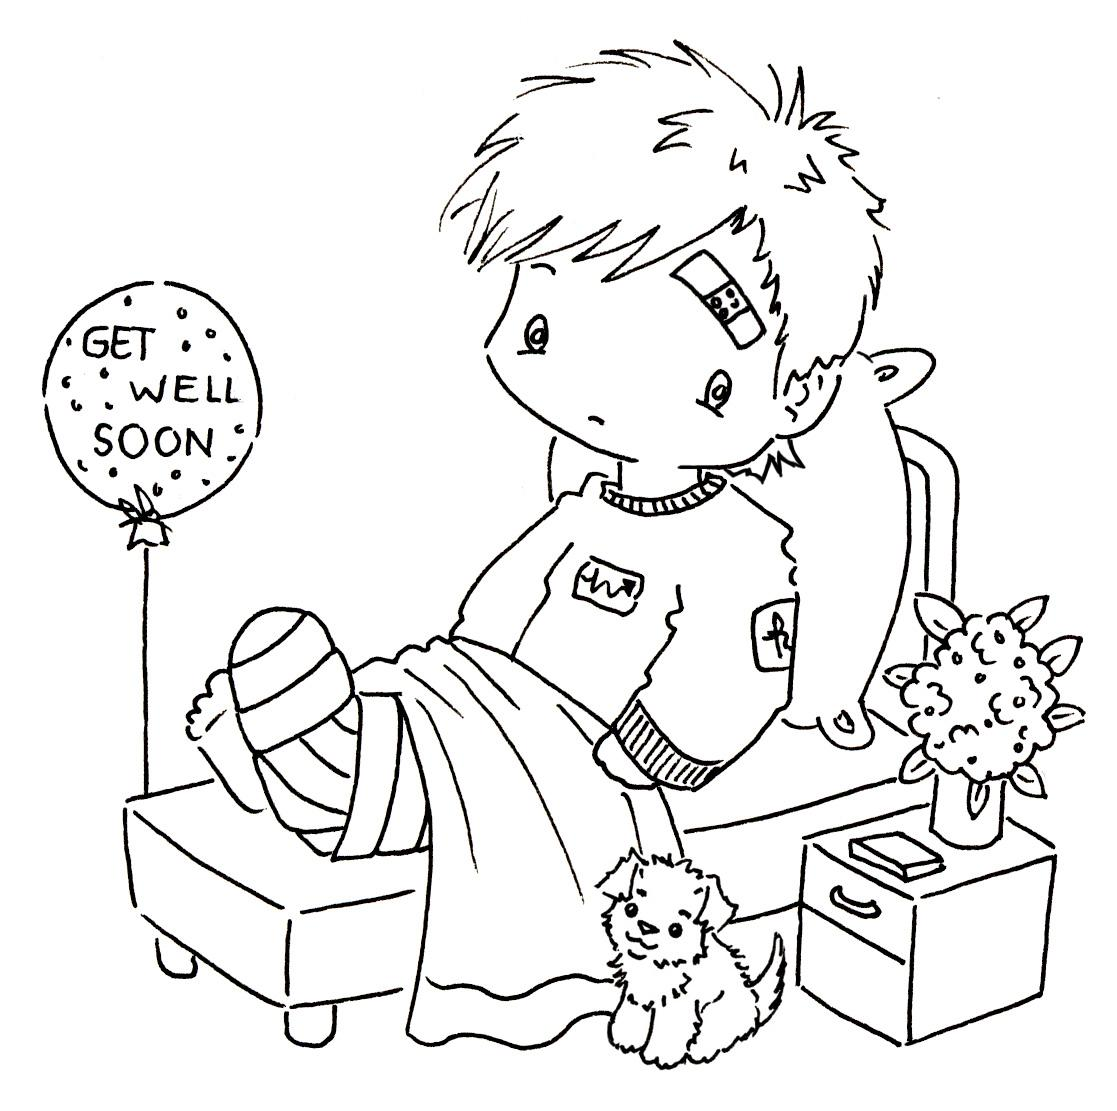 The Words Get Well Soon Colouring Pages